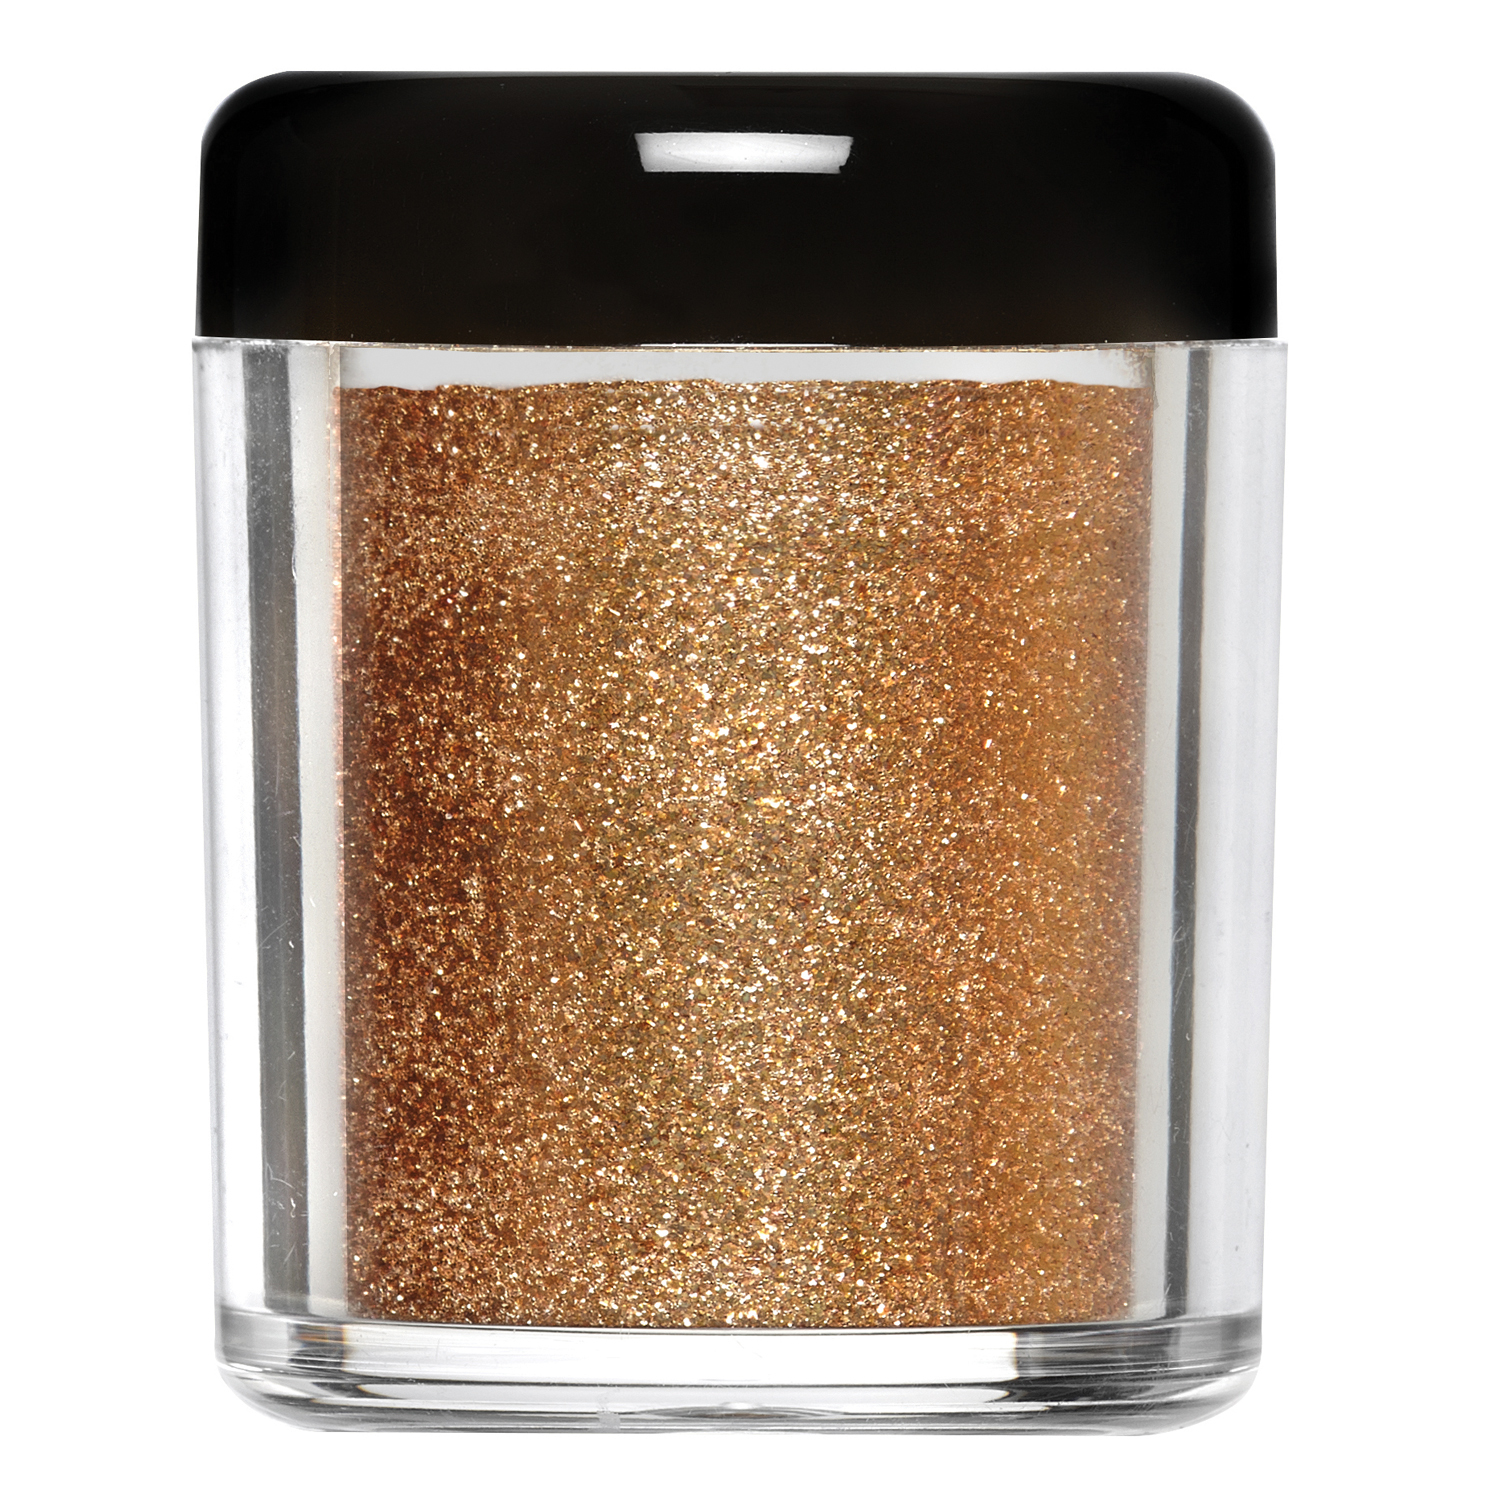 Barry M Cosmetics Glitter Rush Body Glitter